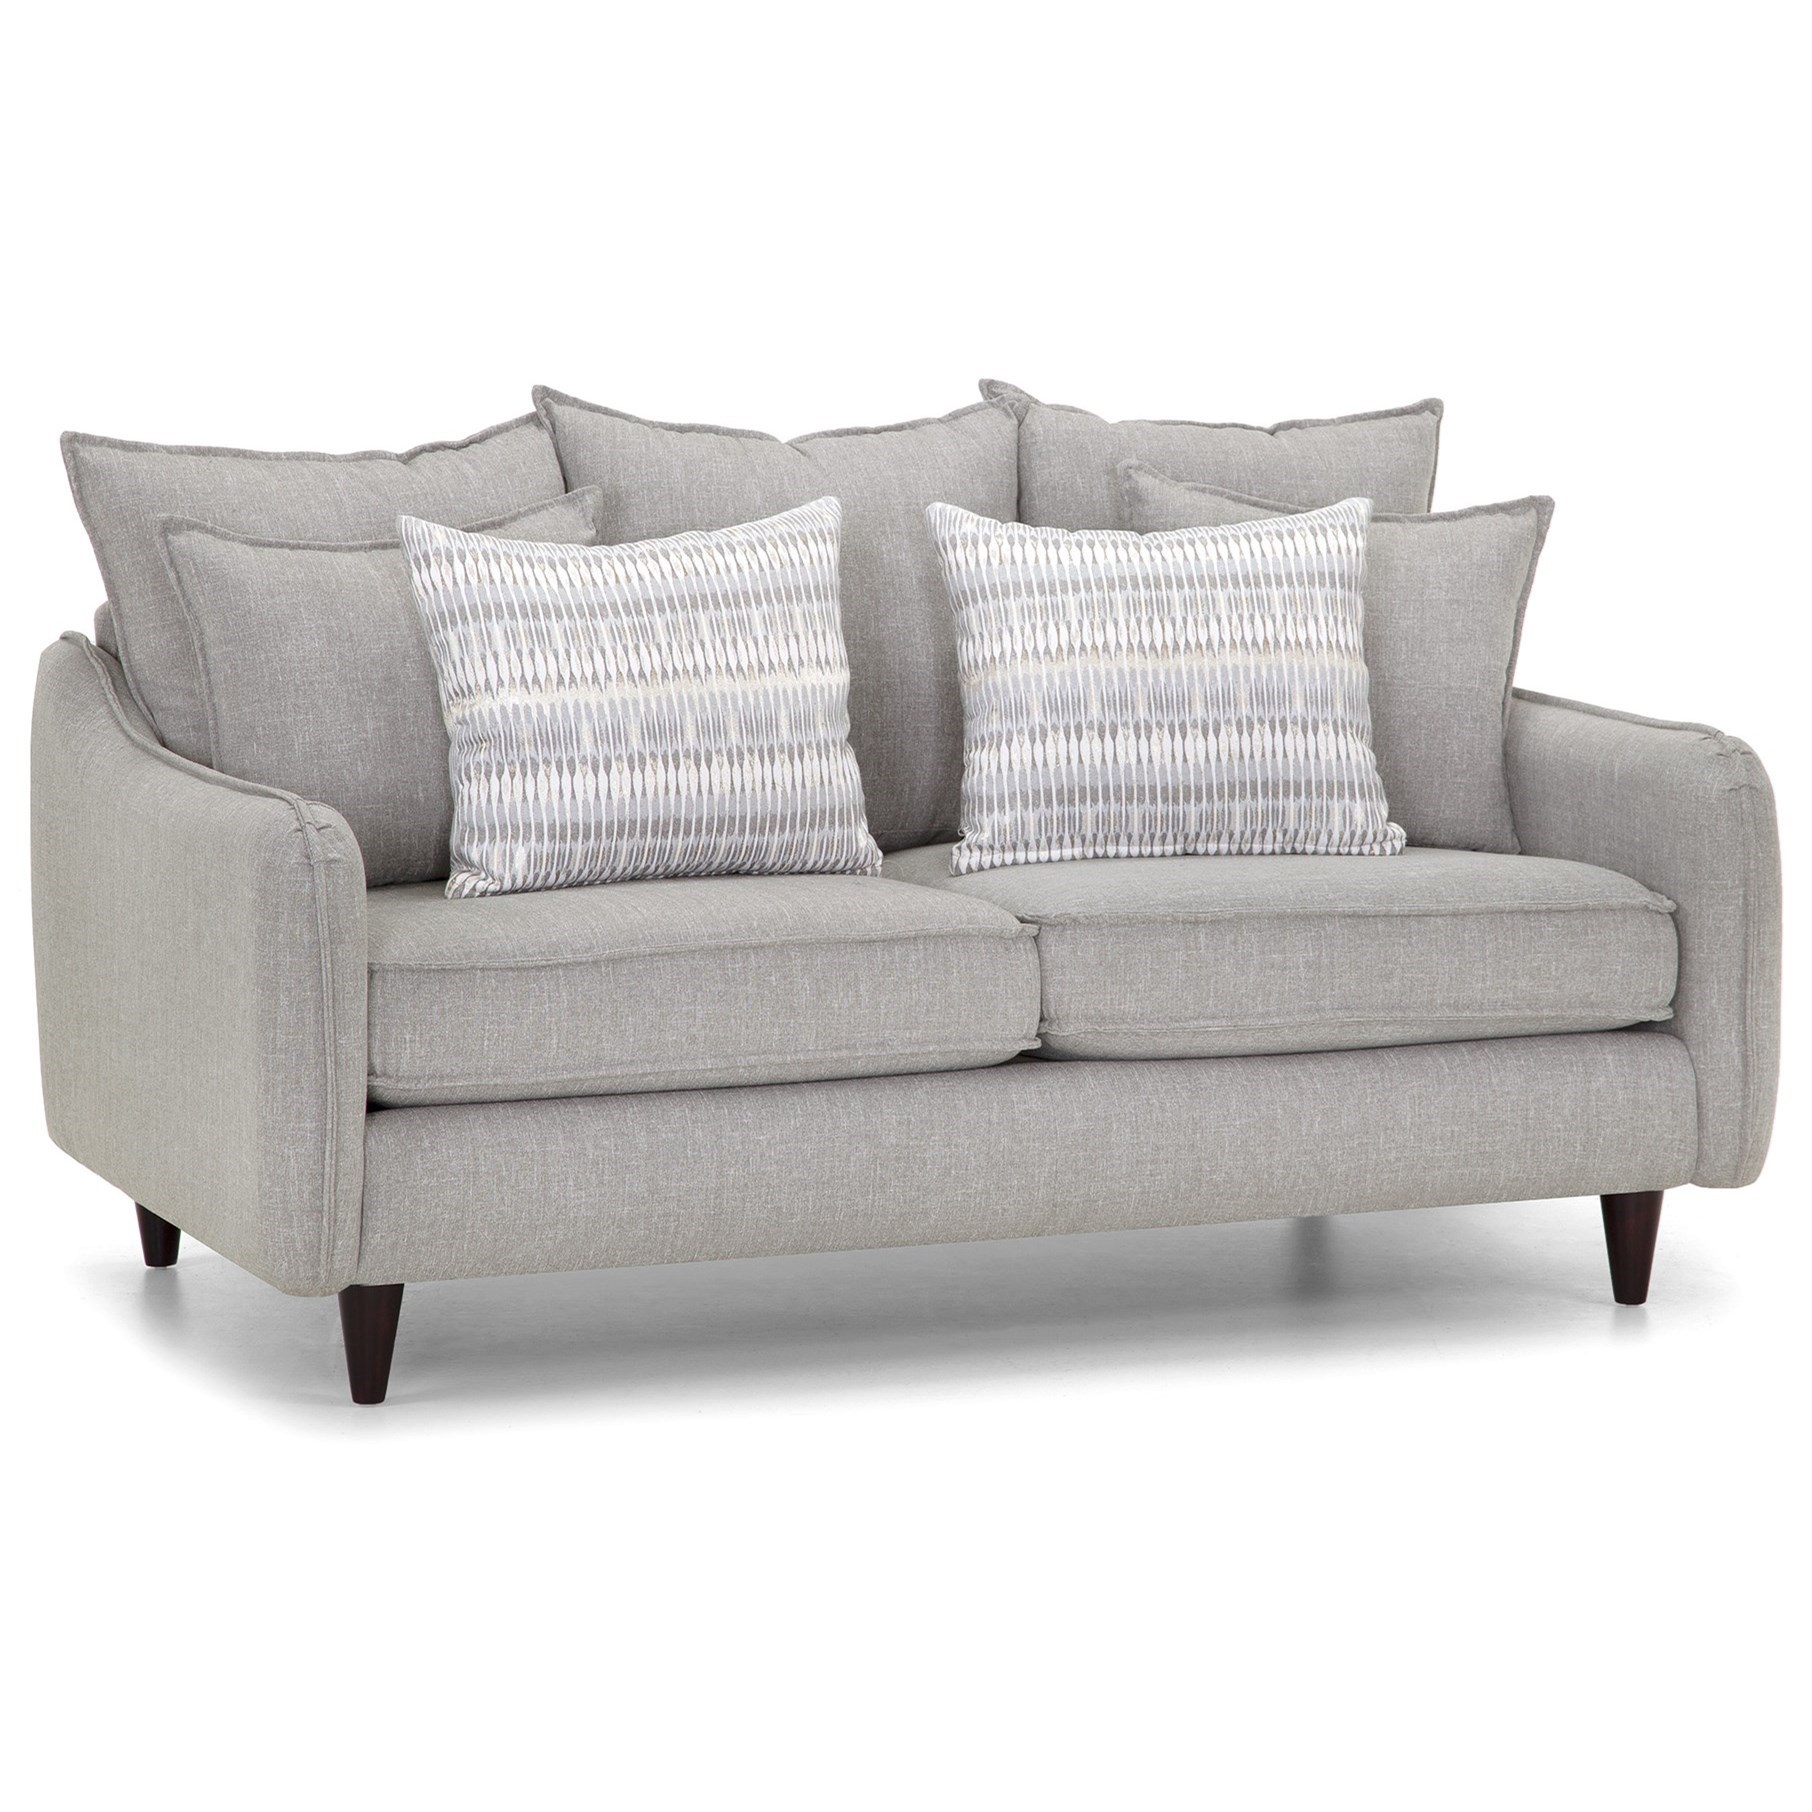 Mila Loveseat by Franklin at Turk Furniture